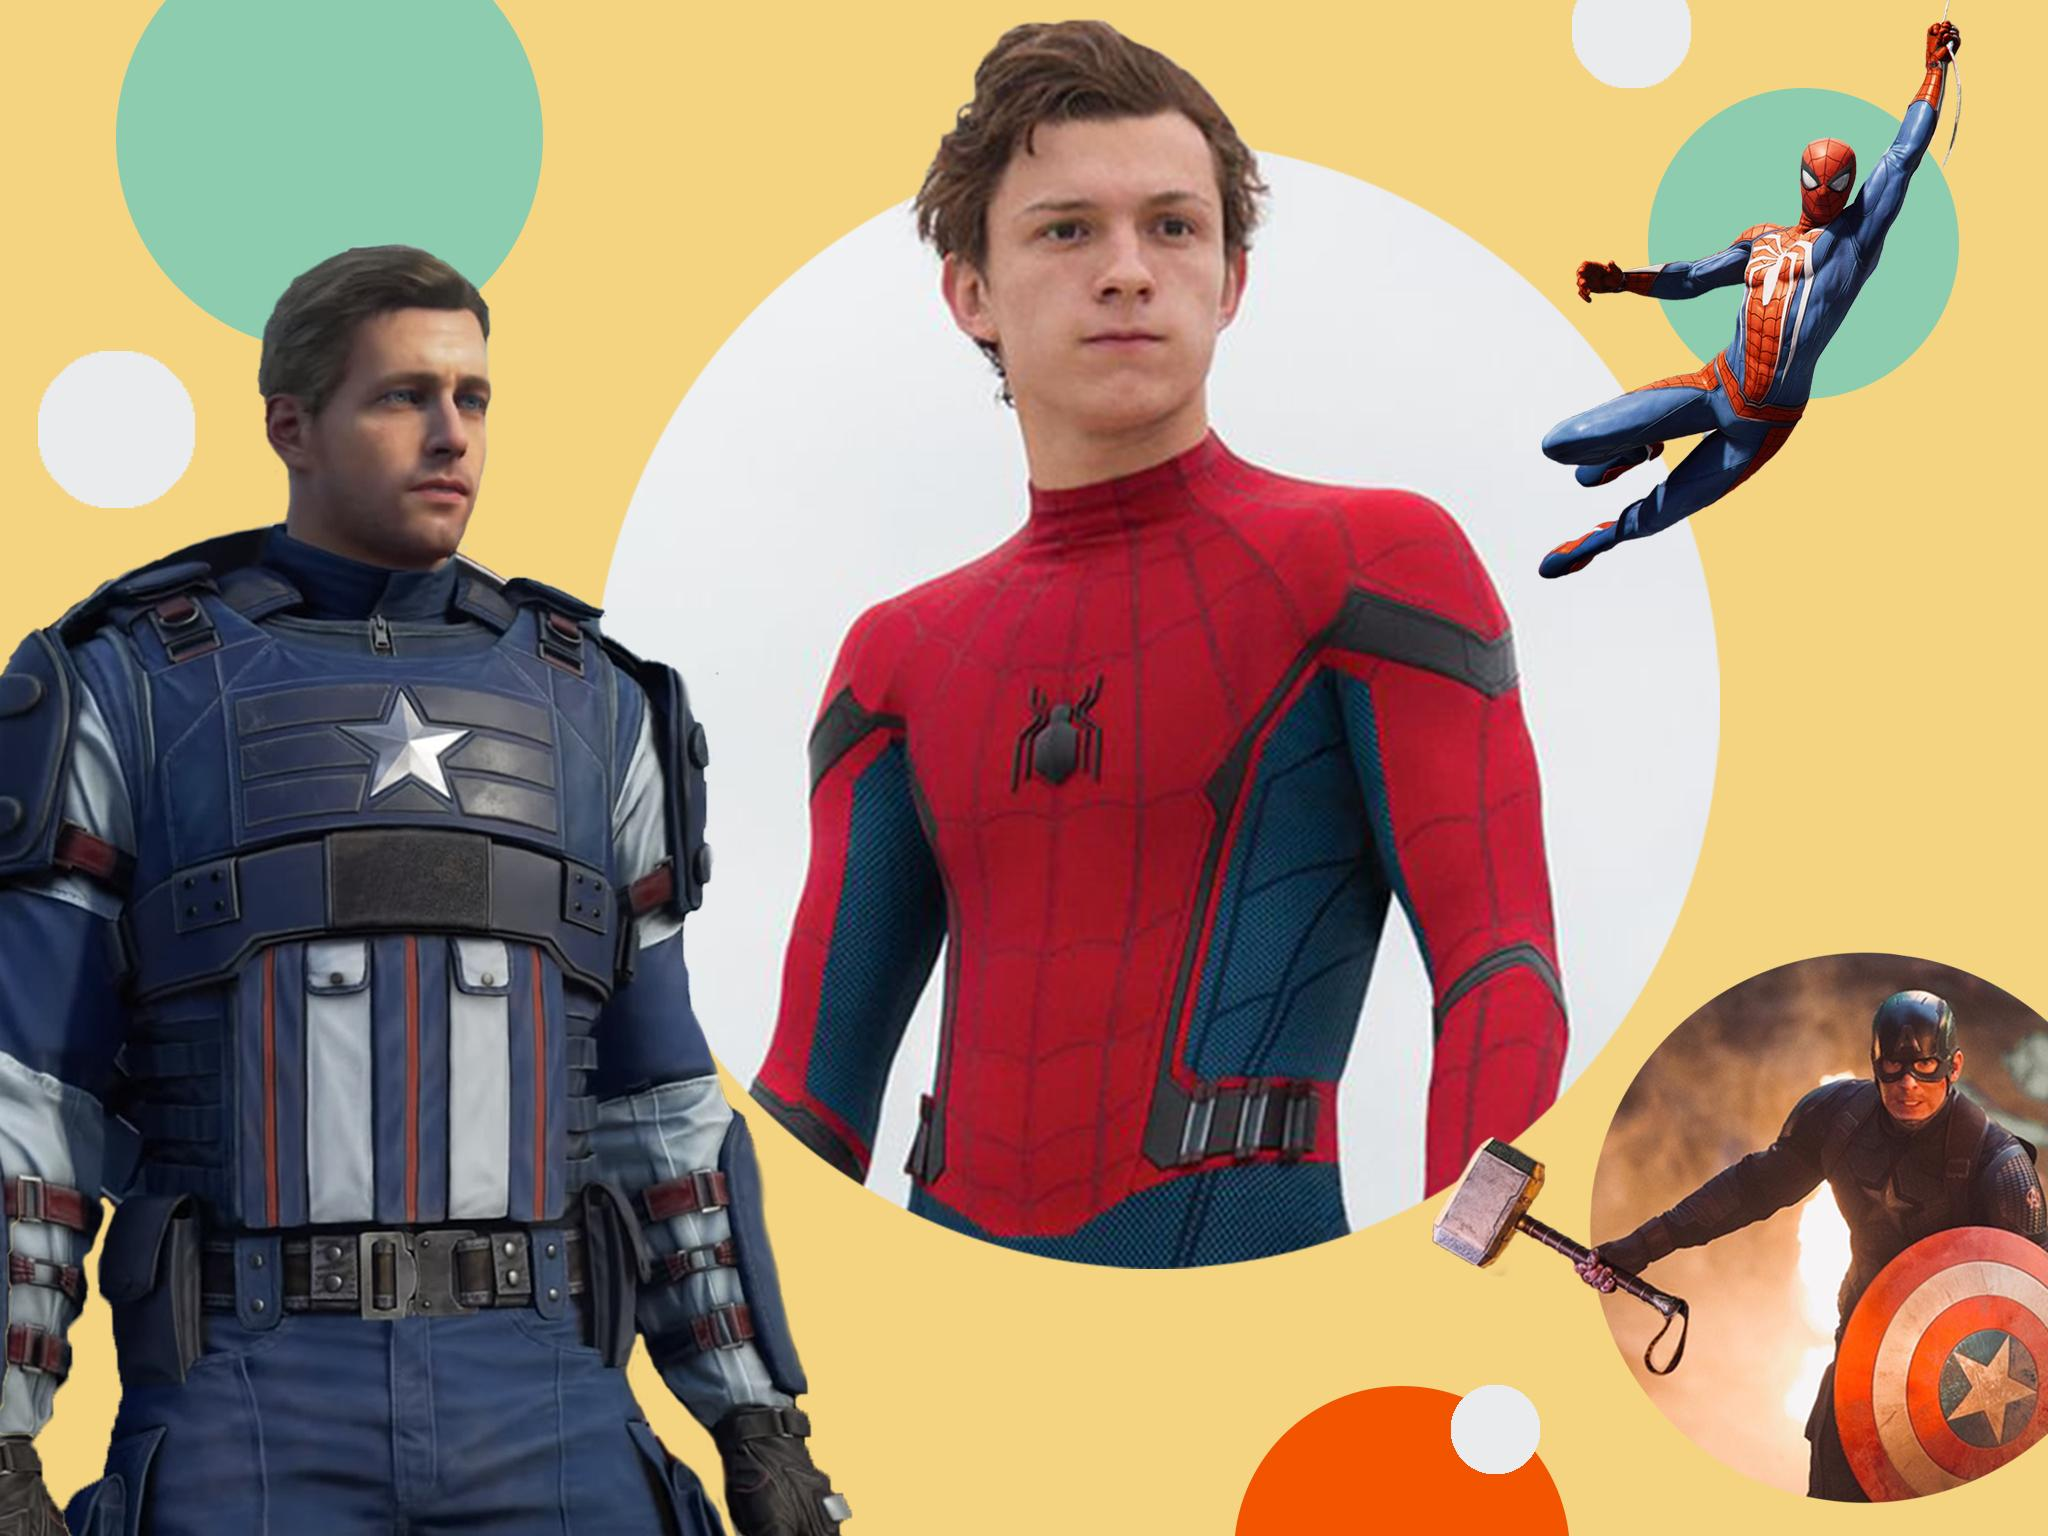 independent.co.uk - Louis Chilton - Why Marvel comics are perfect for video games - but wrong for cinema